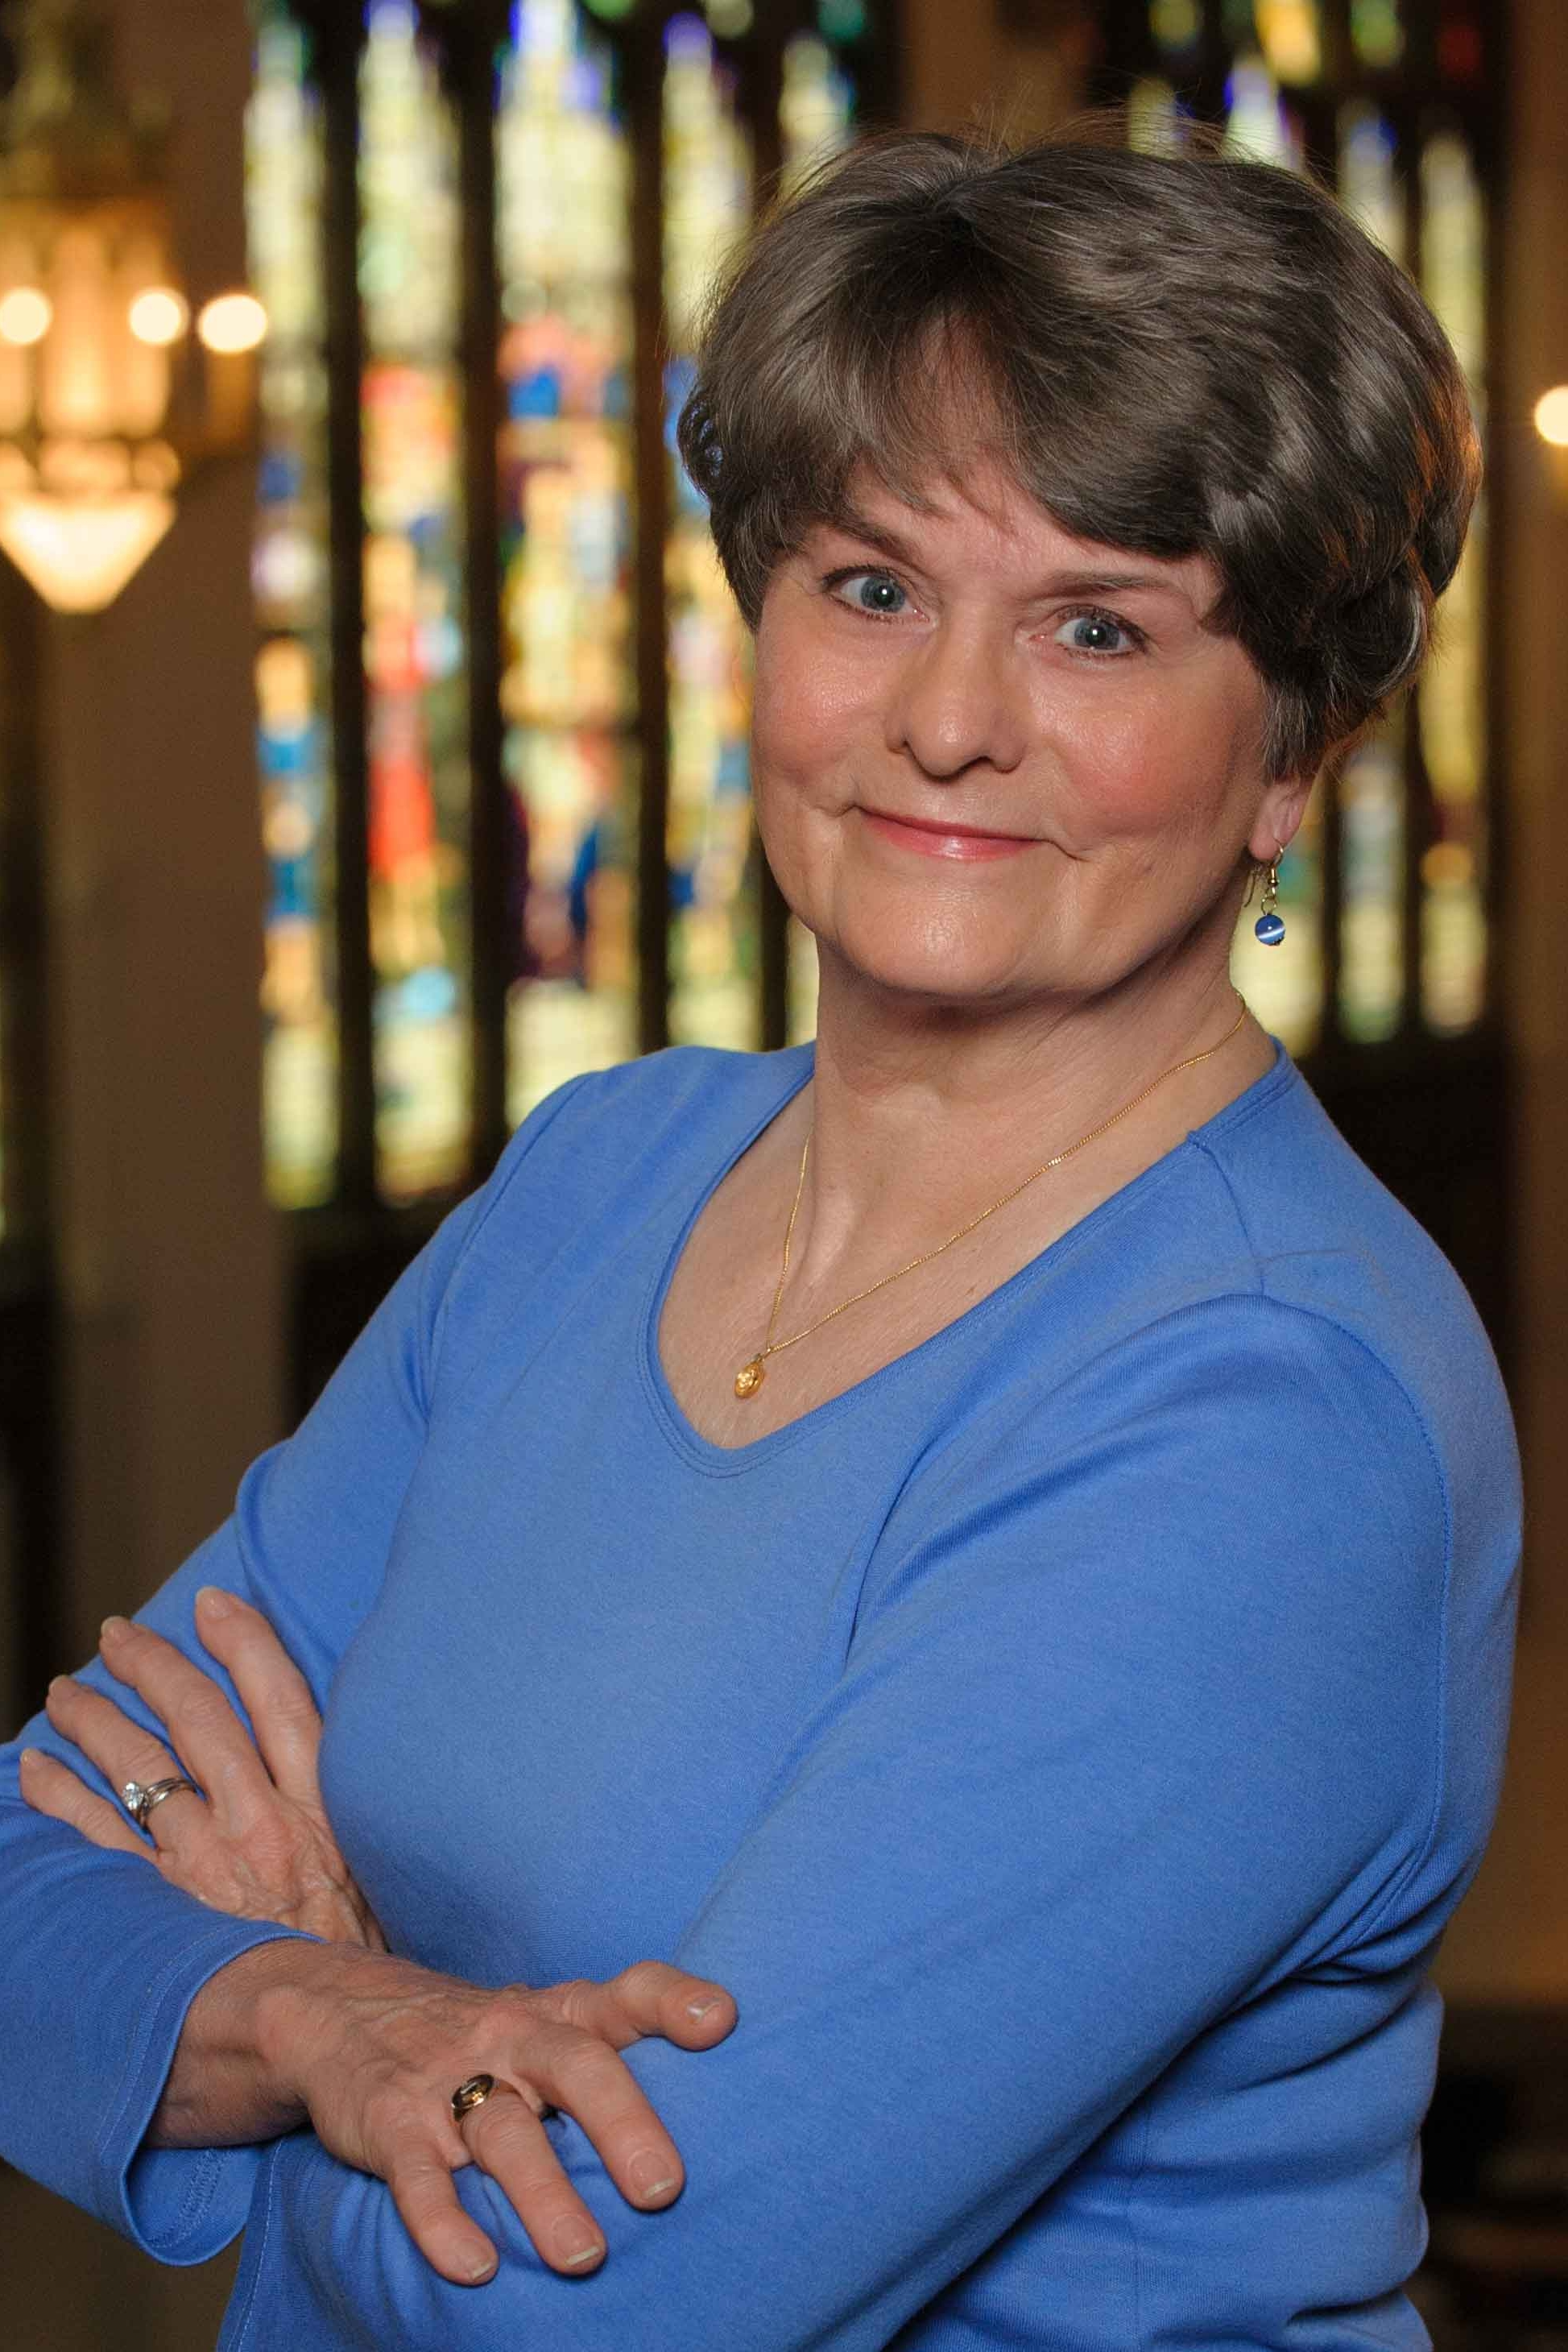 rev. dee stone - Connections Minister